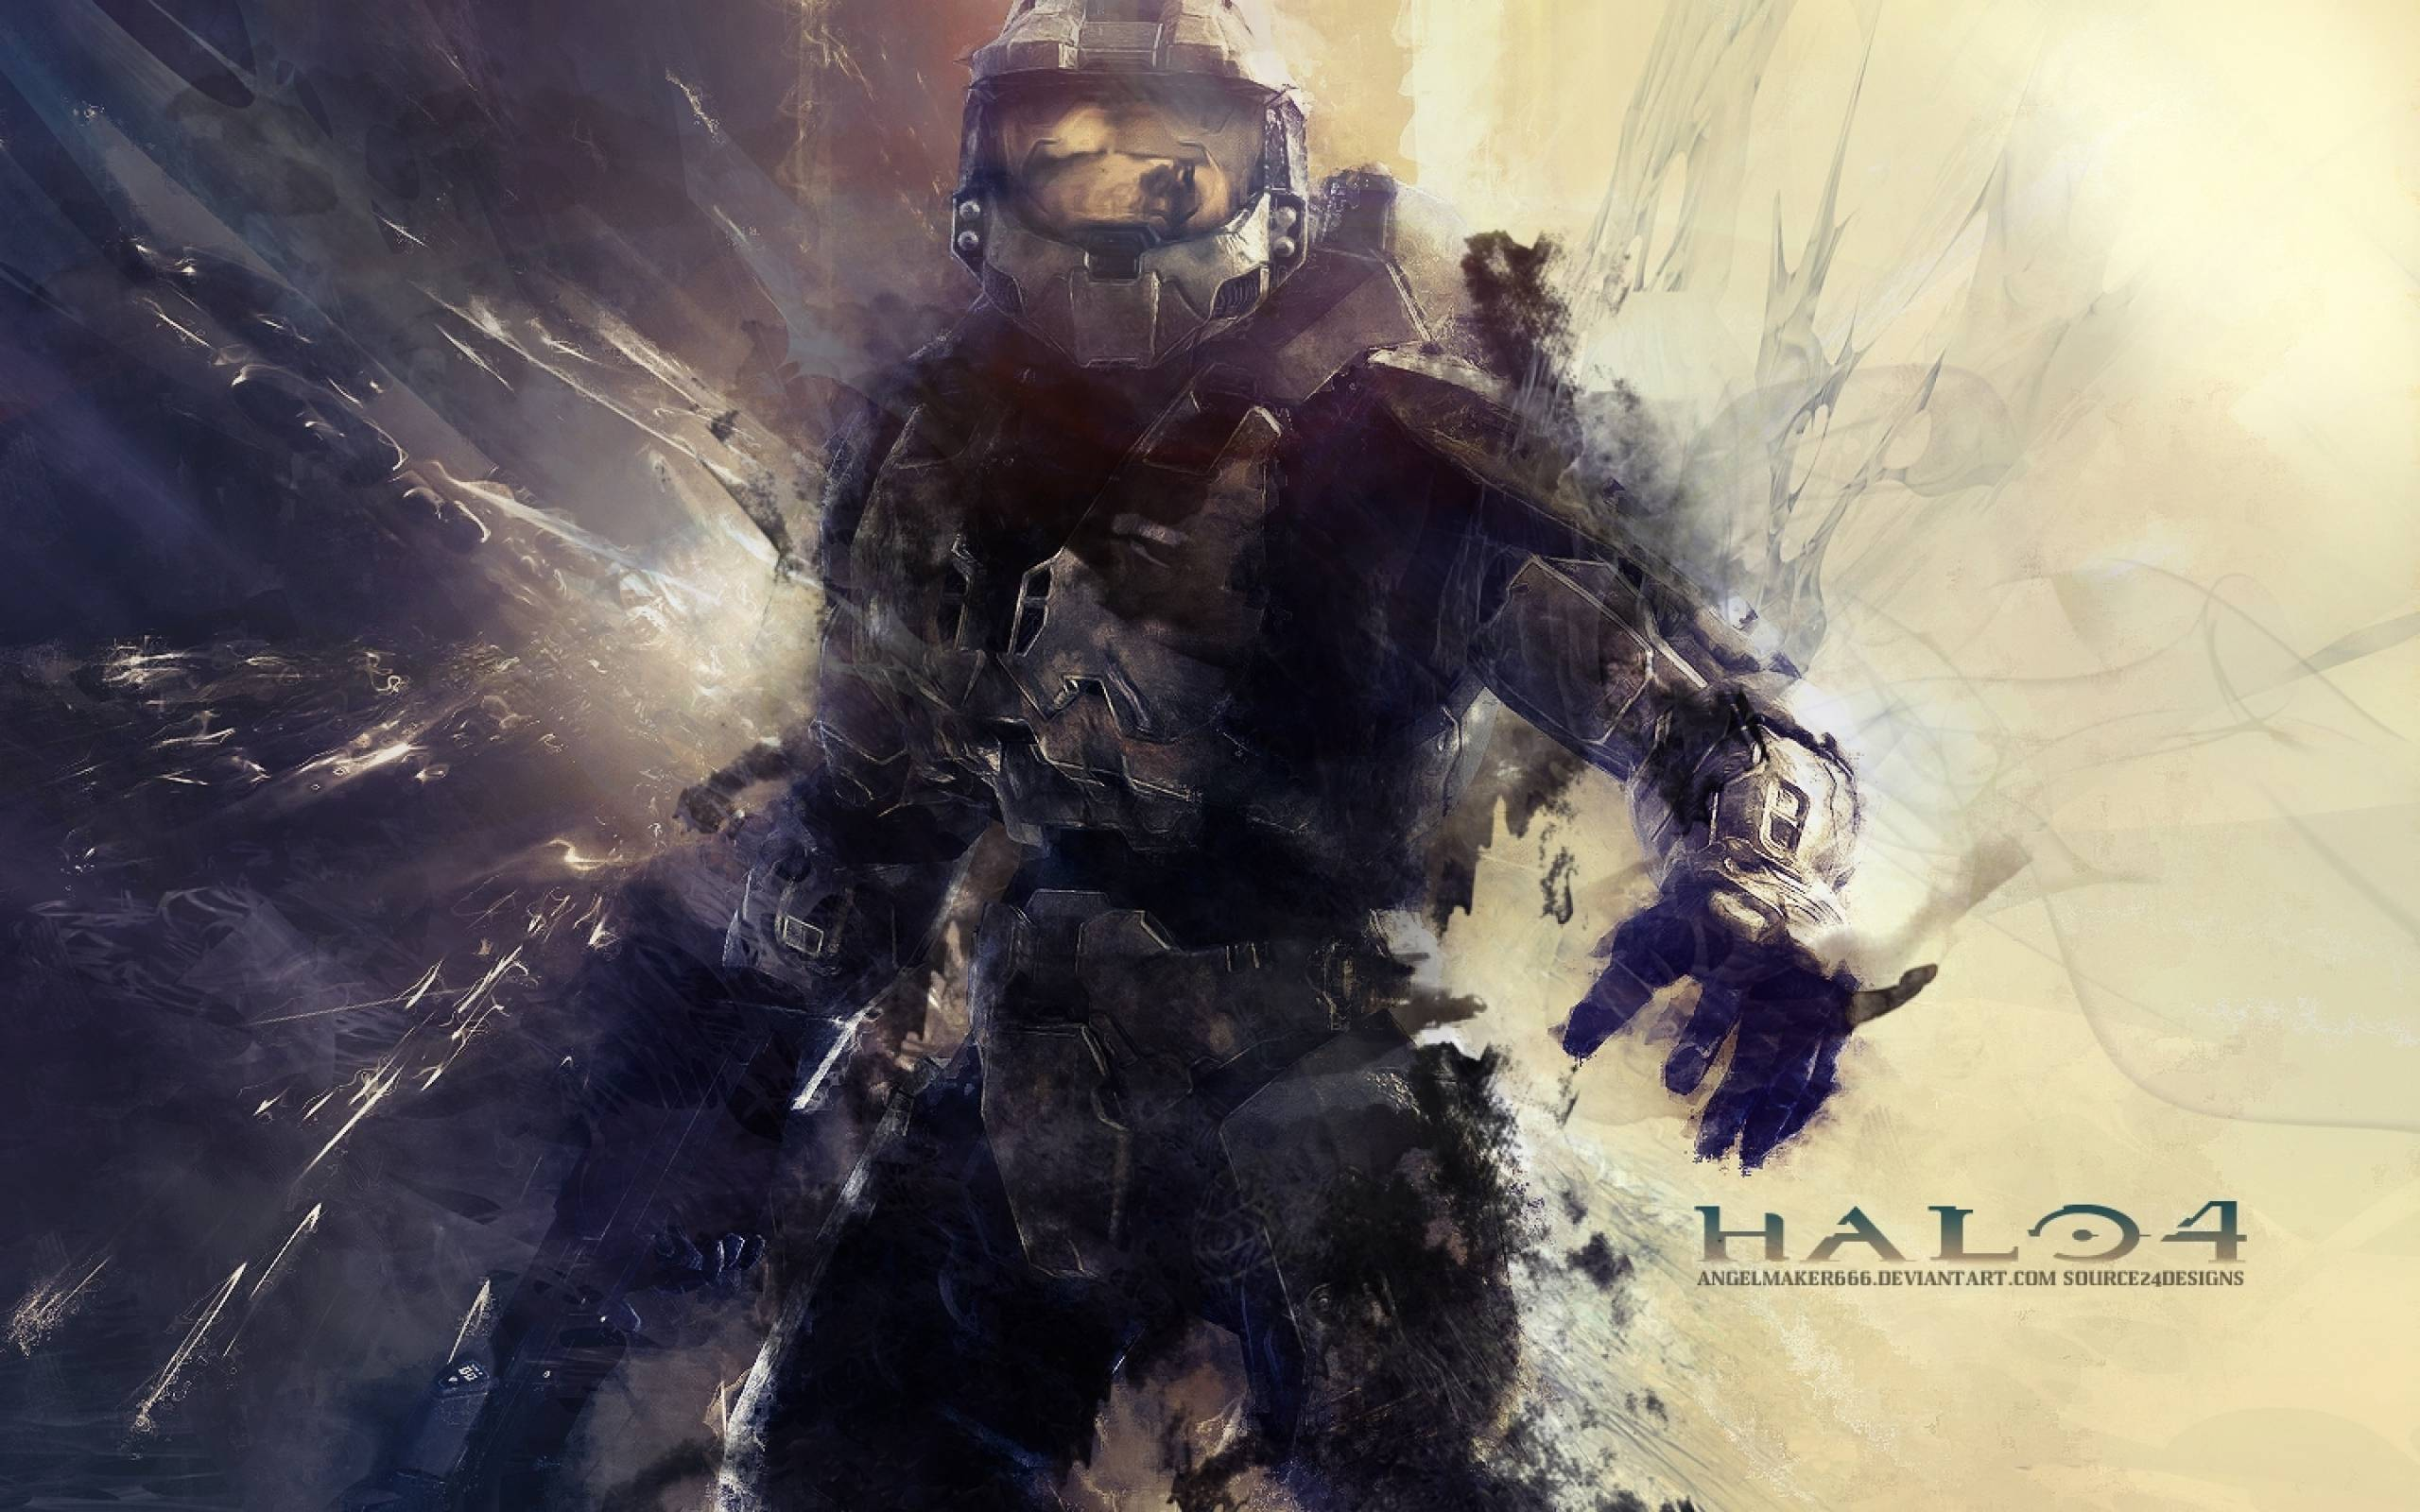 Halo 4 Backgrounds HD - Wallpaper Cave